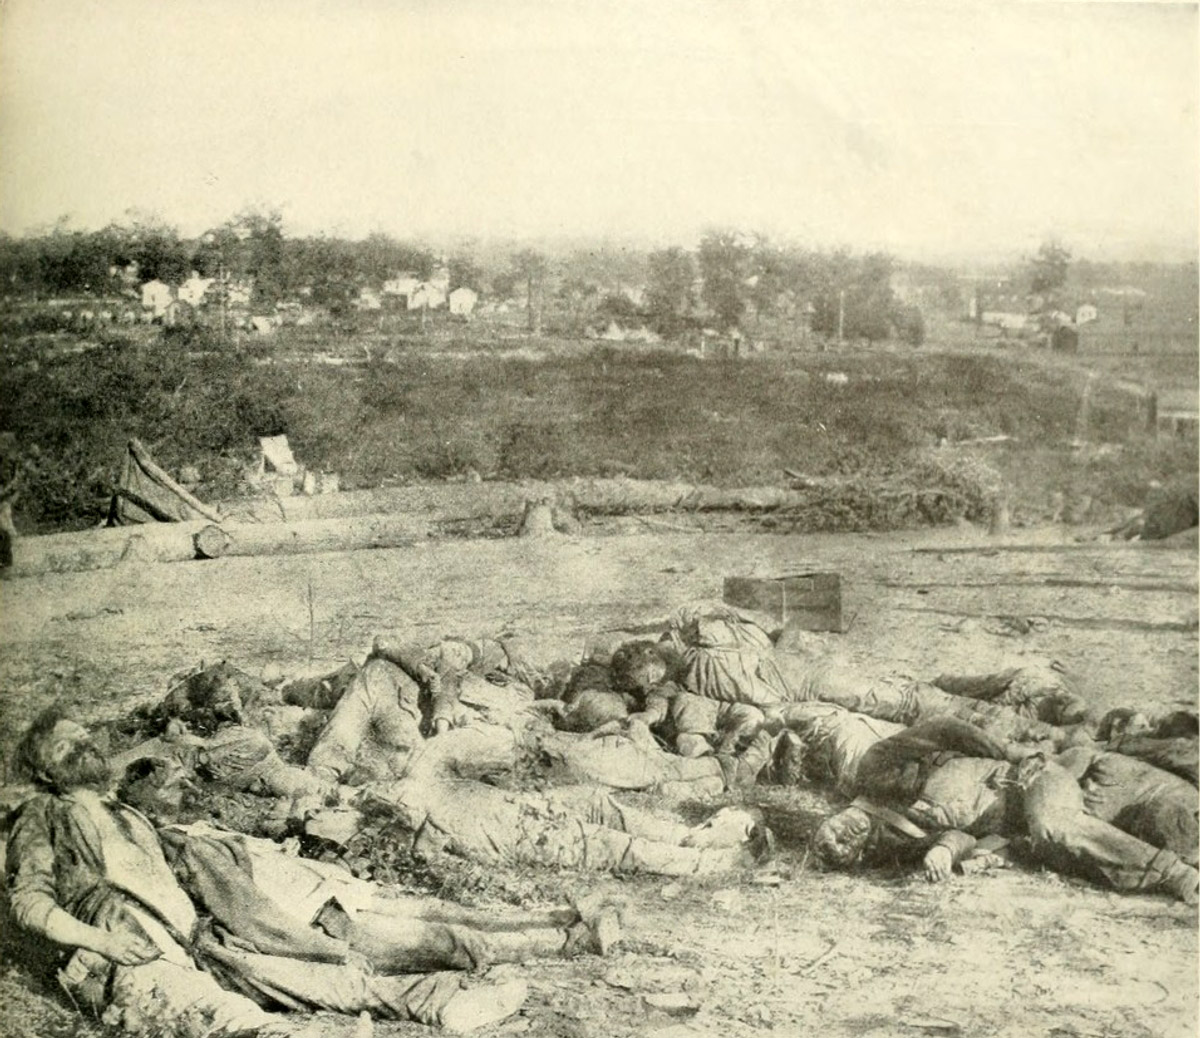 Casualties of the Battle of Corinth in Mississippi during